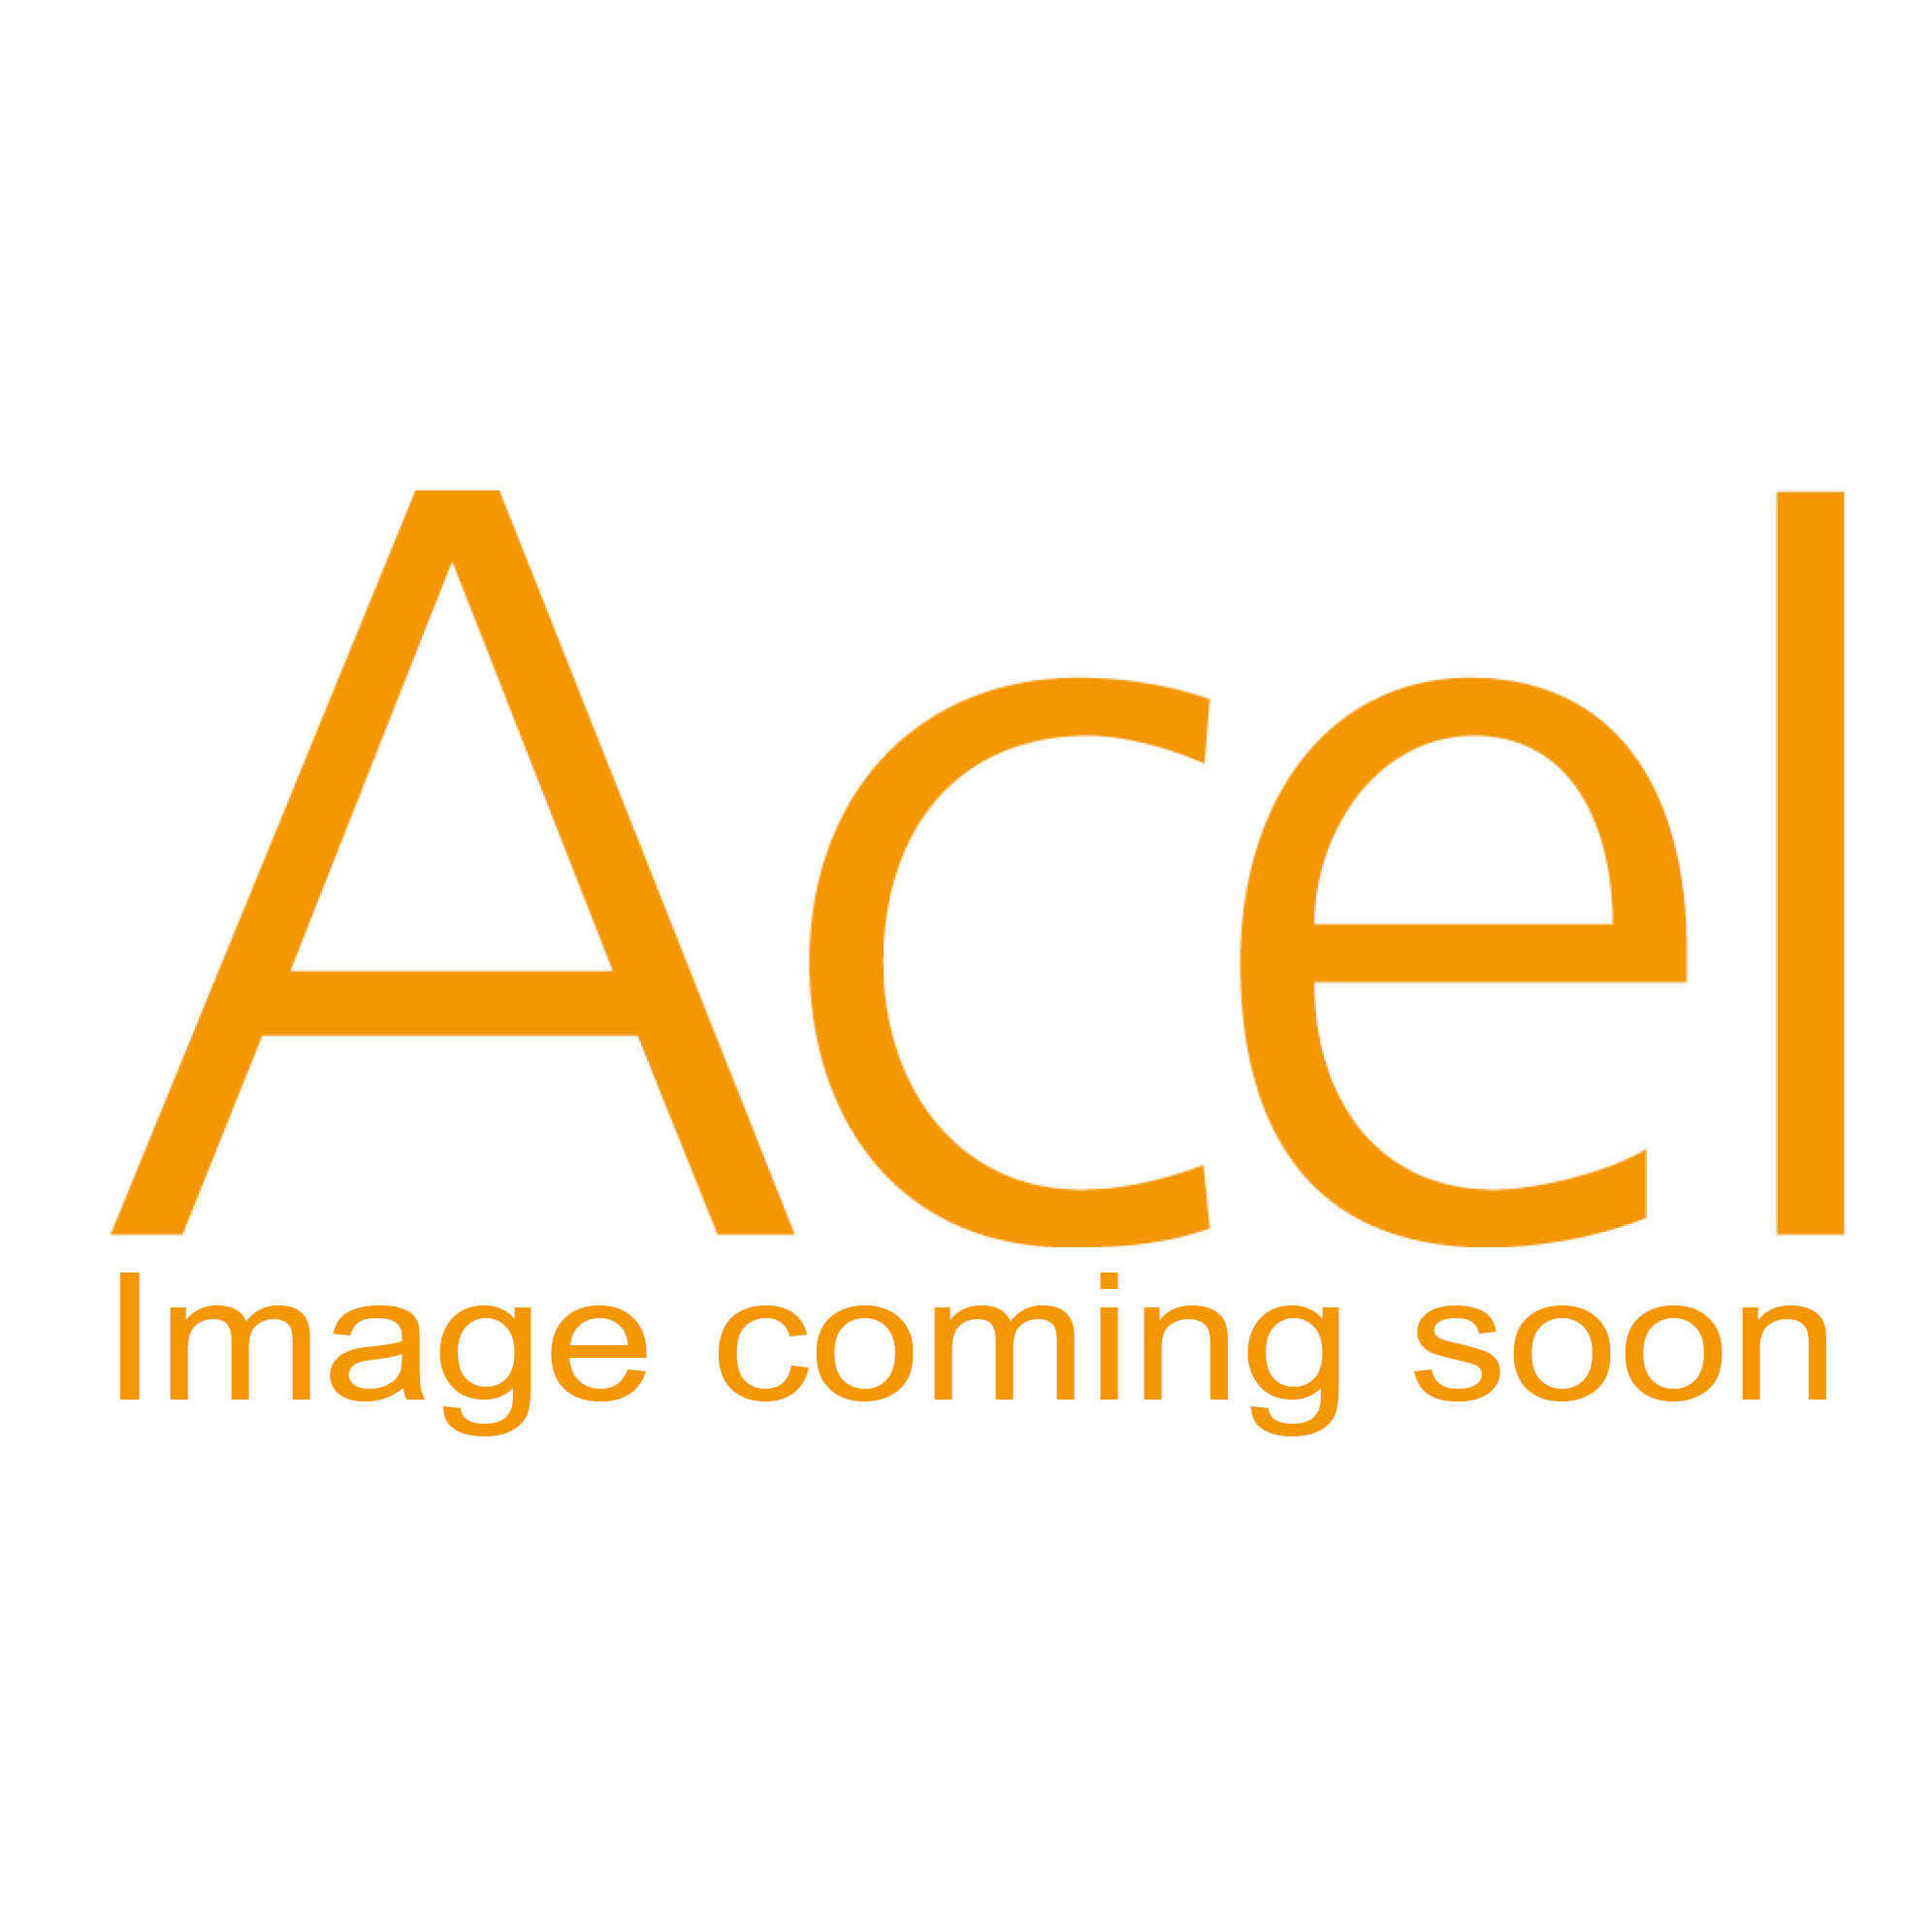 Self Adhesive Vinyl labels - Colour coded & lettered phase discs - 25mm dia - 5 sheets of 40